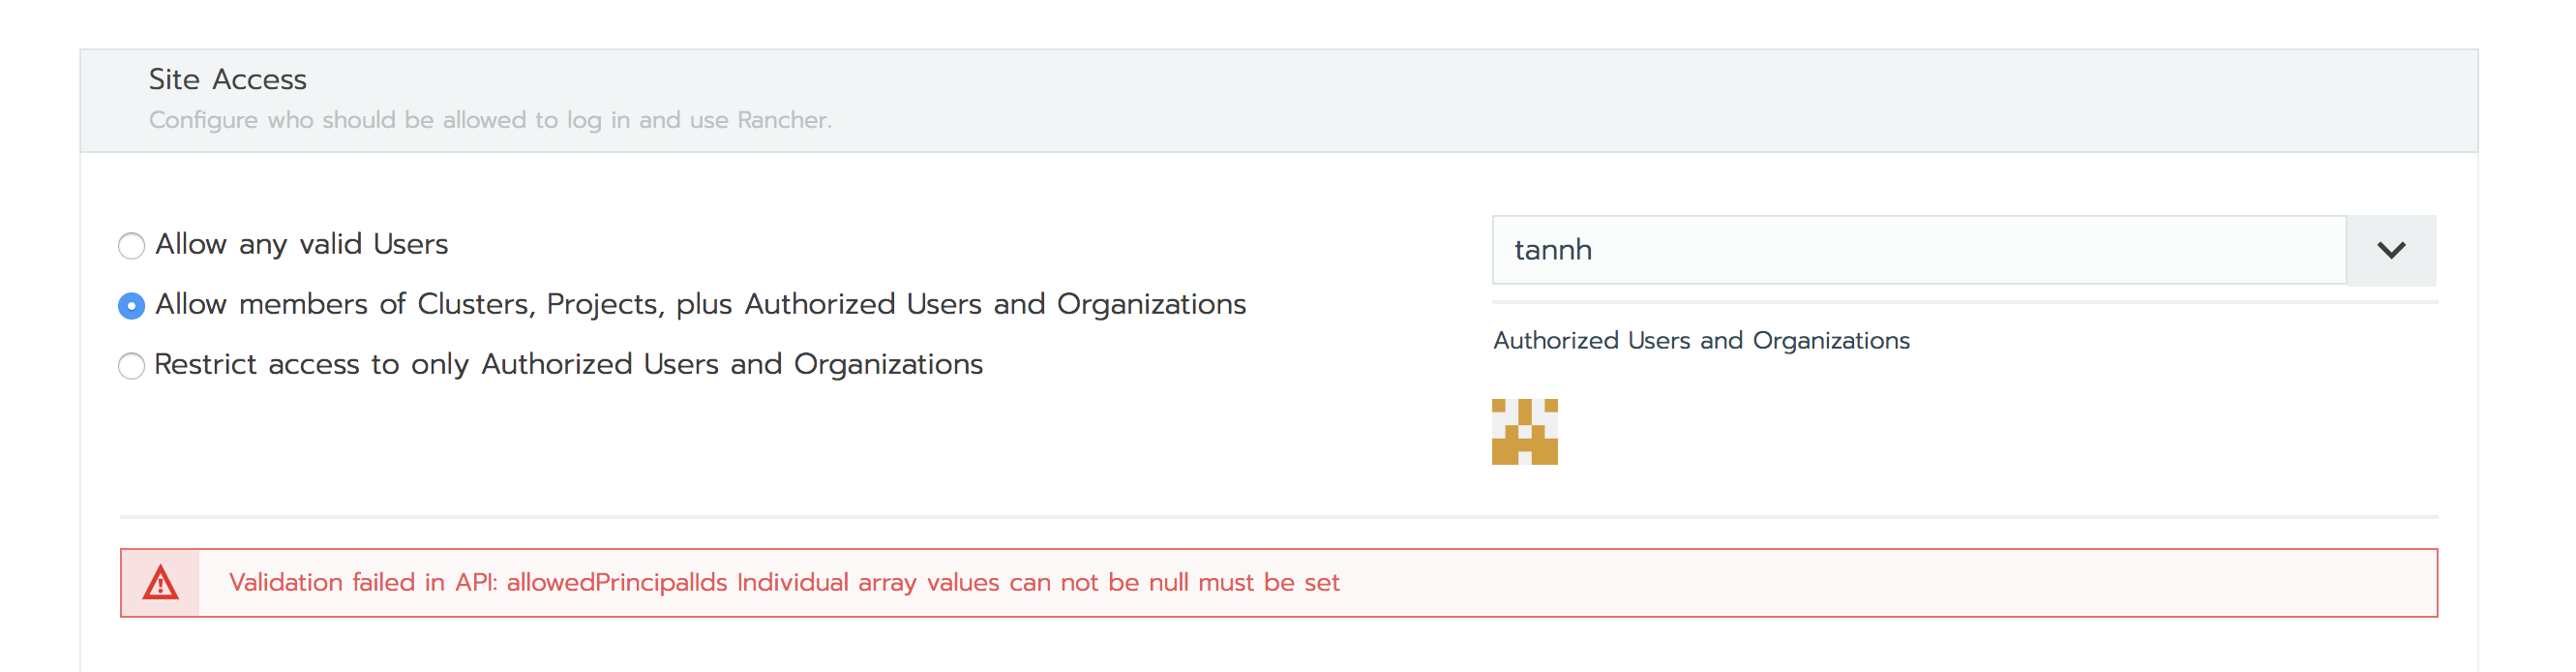 Security, Authentication, LDAP: rancher server error on